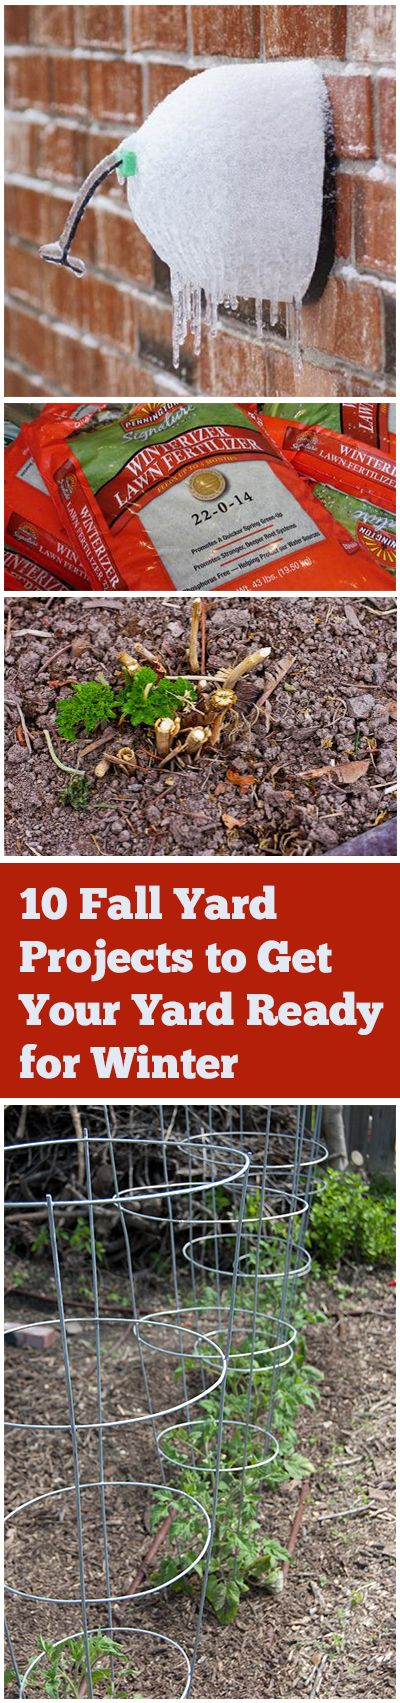 10 Fall Yard Projects to Get Your Yard Ready for Winter.. Aerate, Water, and Mow your lawn, Prune perennials and clean up annuals, Add fertilizer, Rake up leaves, clean up tools and plant supports and put them away for winter, protect your potted plants. click link for more information.